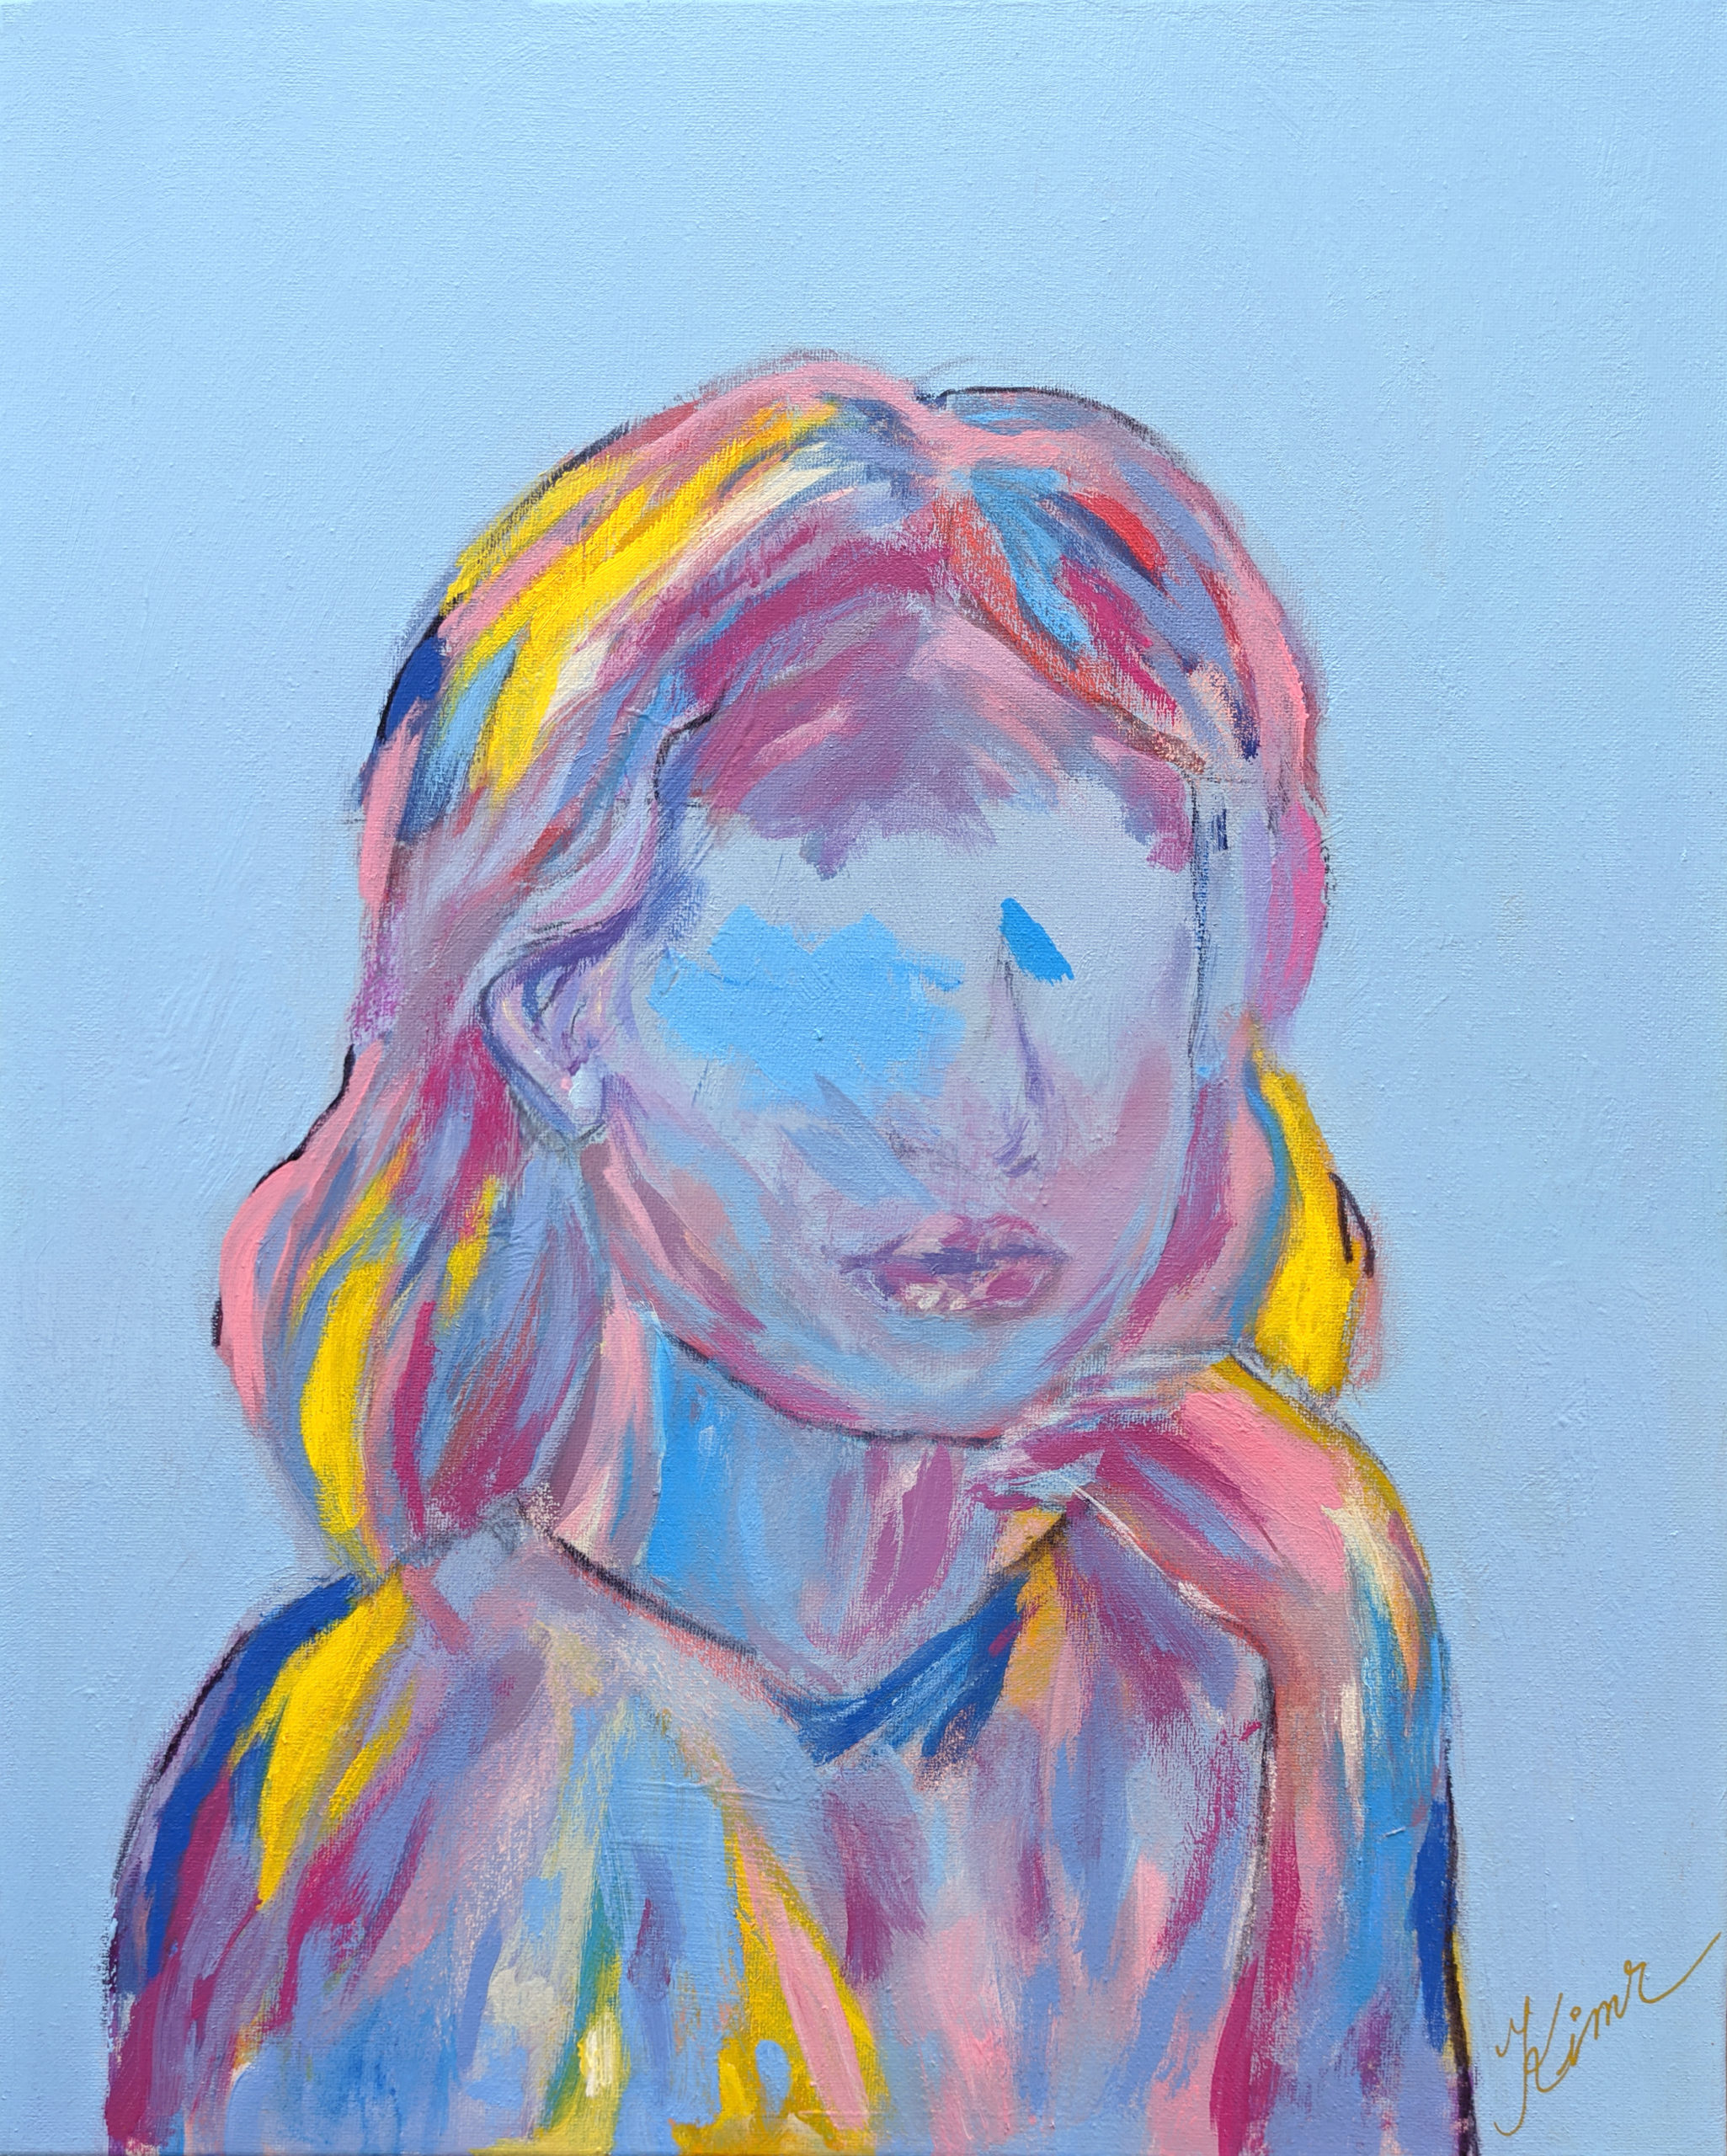 portrait of girl, no eyes, blue background with streaks of yellow, red, pinks, and blues defining her profile